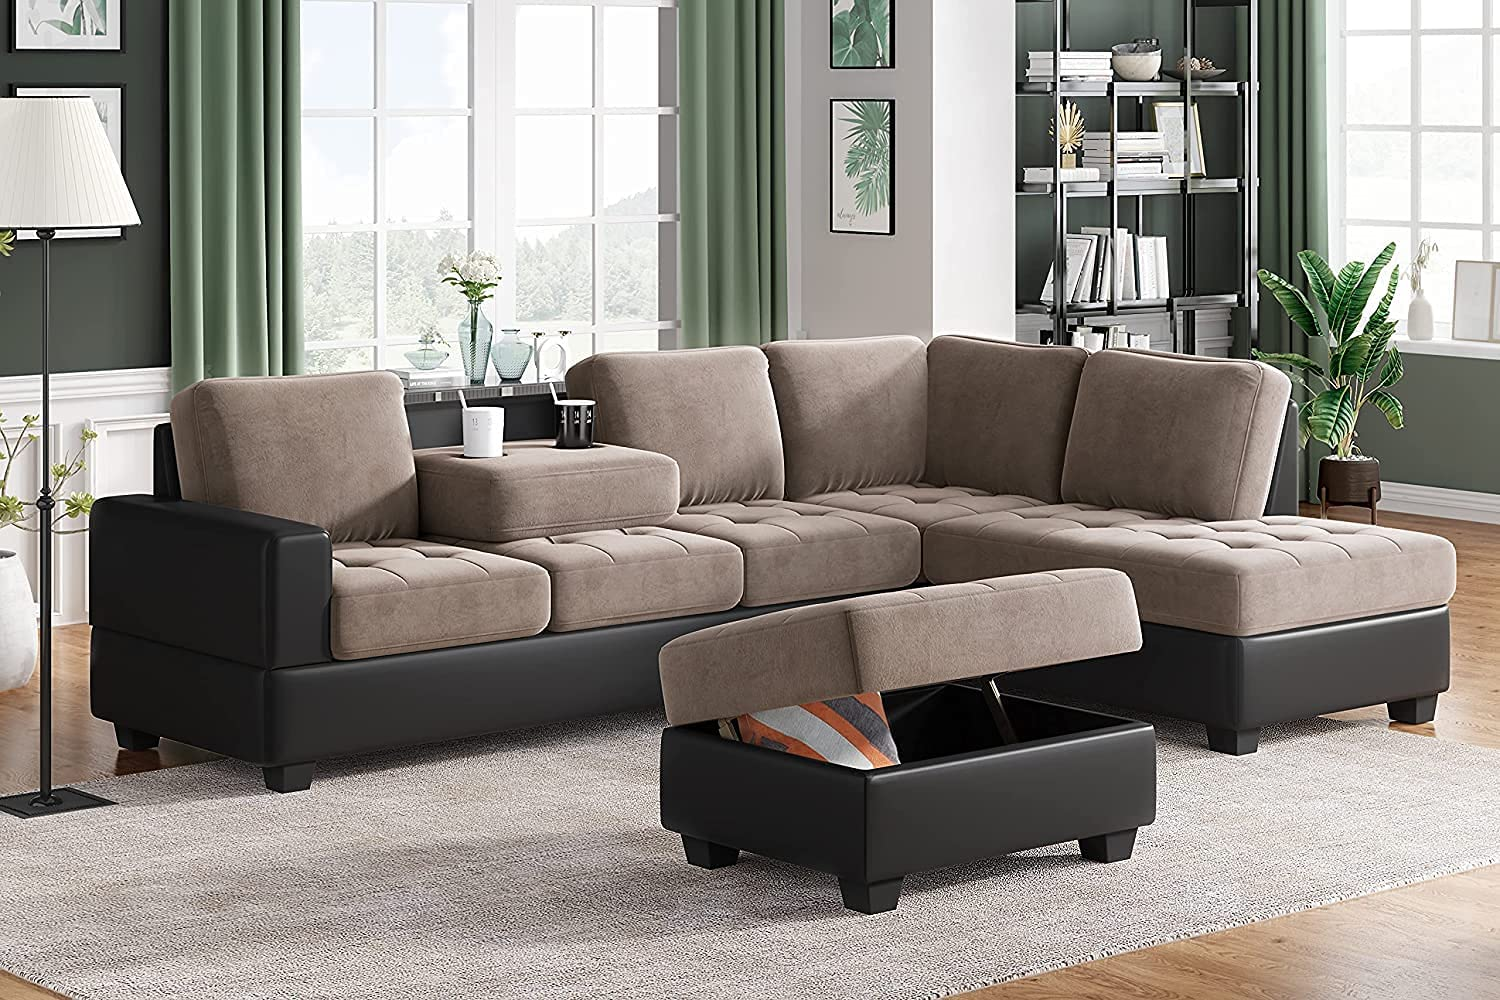 GAOPAN Convertible 6-Seat Sectional Chaise Lounge and Ottoman for Living Room Furniture,L-Shape Couch Classic Tufted Style Sofa with Two Cup Holders, (Brown+Black